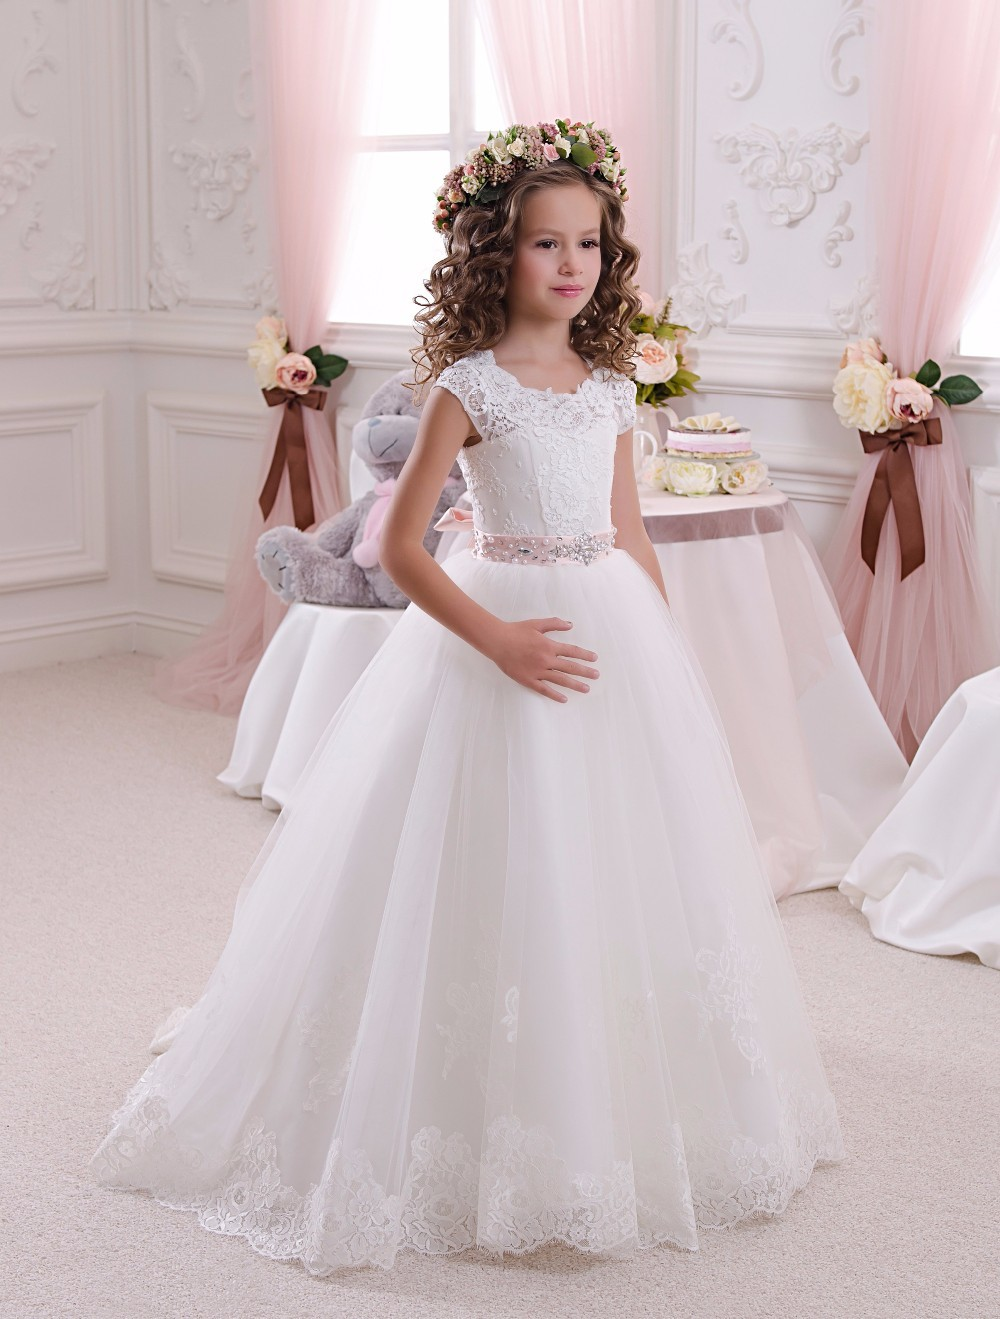 Chaming Ivory Lace   Flower     Girl     Dresses   Ball Gown Floor Length   Girls   First Communion   Dress   Princess   Dress   2-14 Old 2018